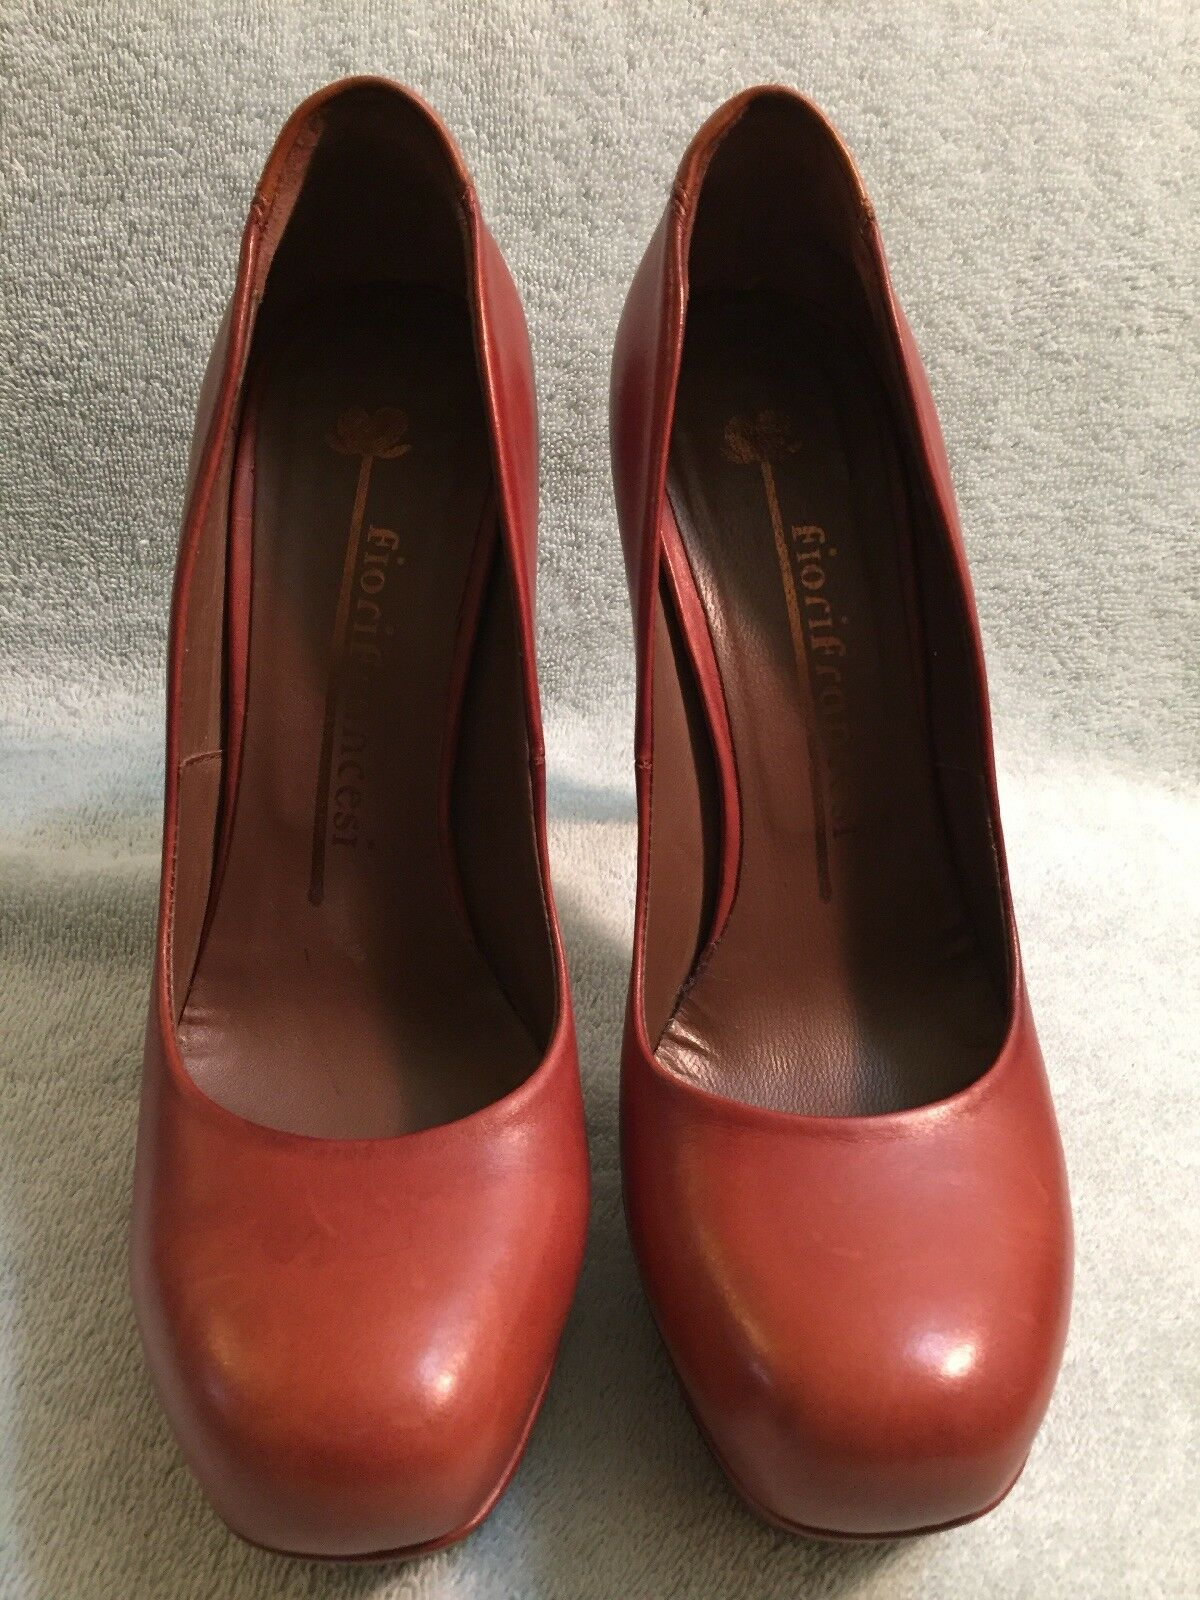 FIORIFRANCESI Pumps Donna Browen Pelle Shoes Size 38.5Us 8 Made In Italy